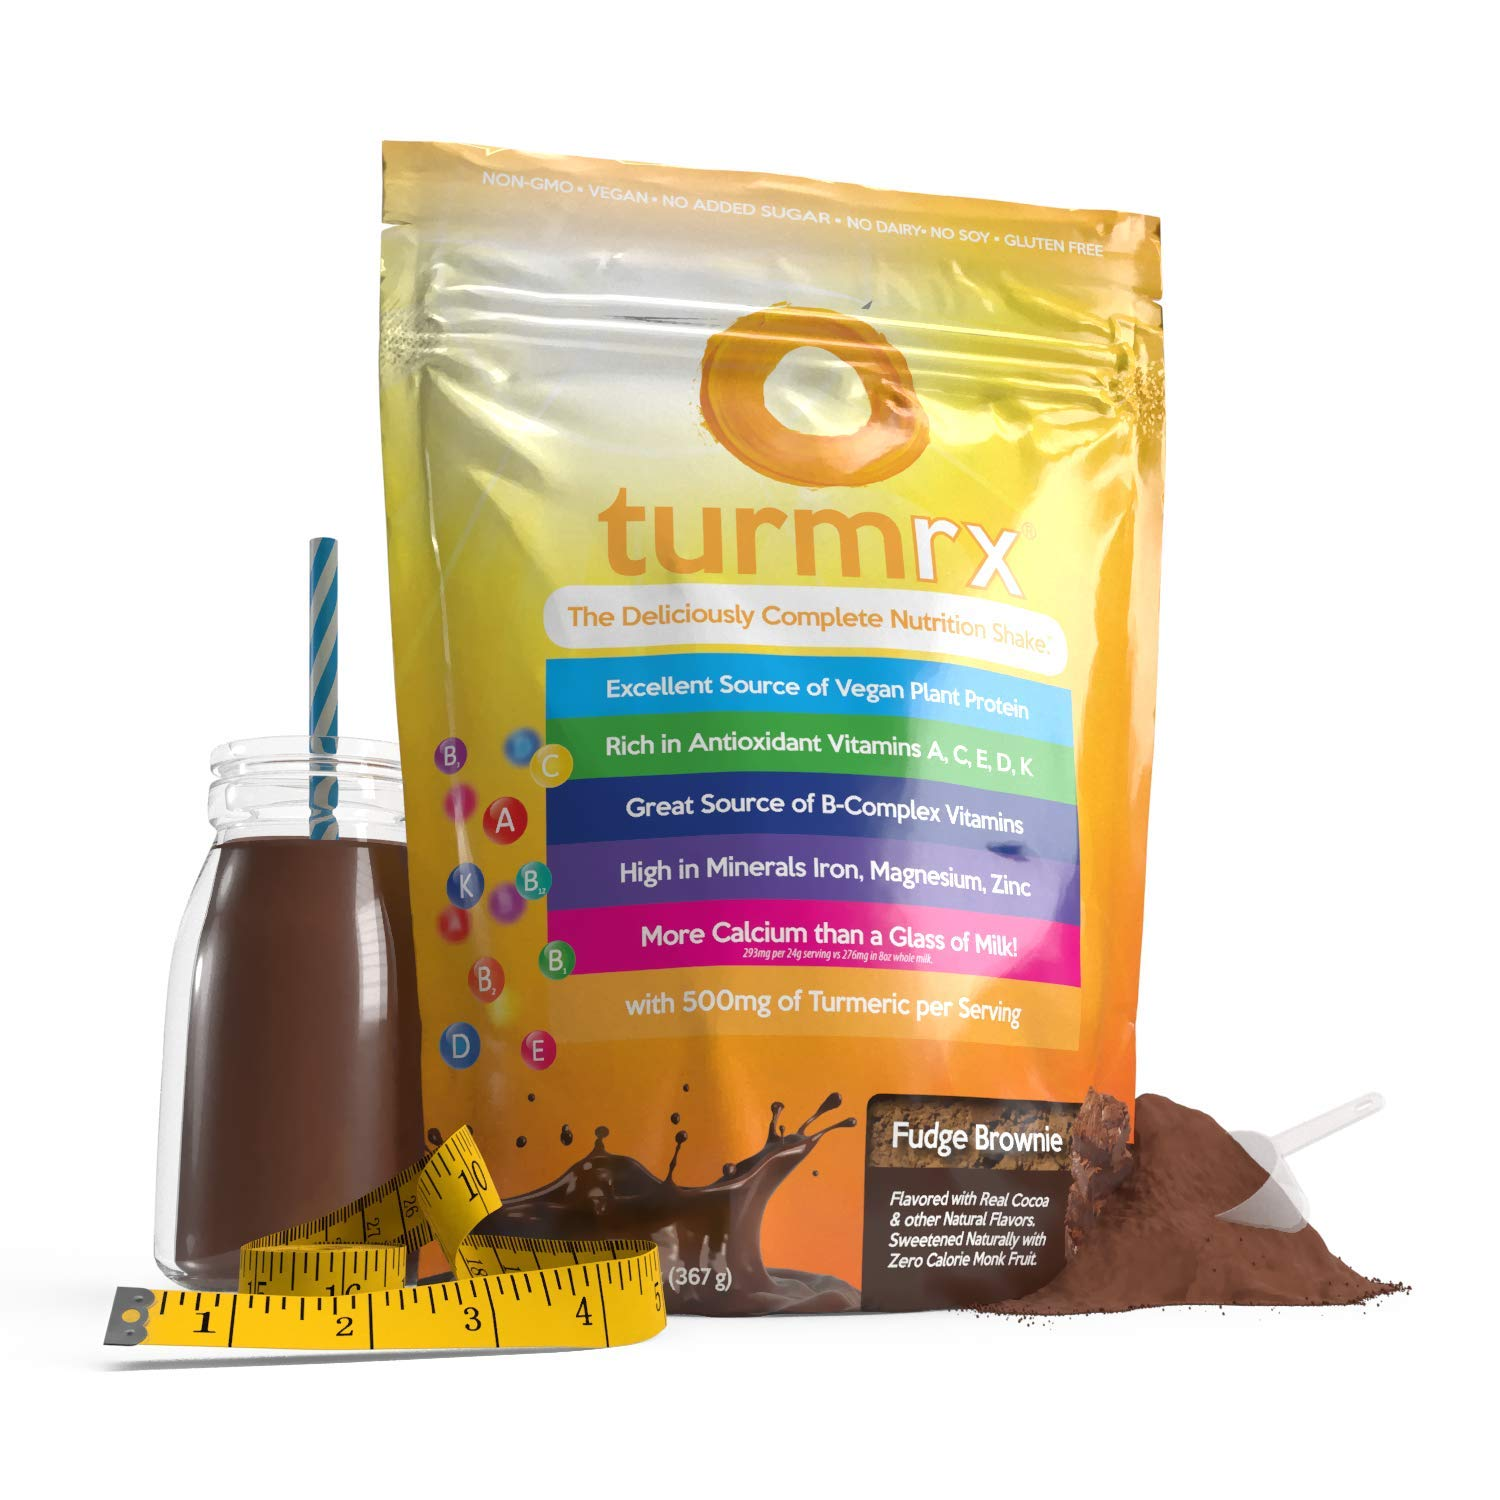 turmrx – Nutritious Vegan Weight Loss Shake Turmeric, Antioxidants, Vitamins Calcium Fudge Brownie